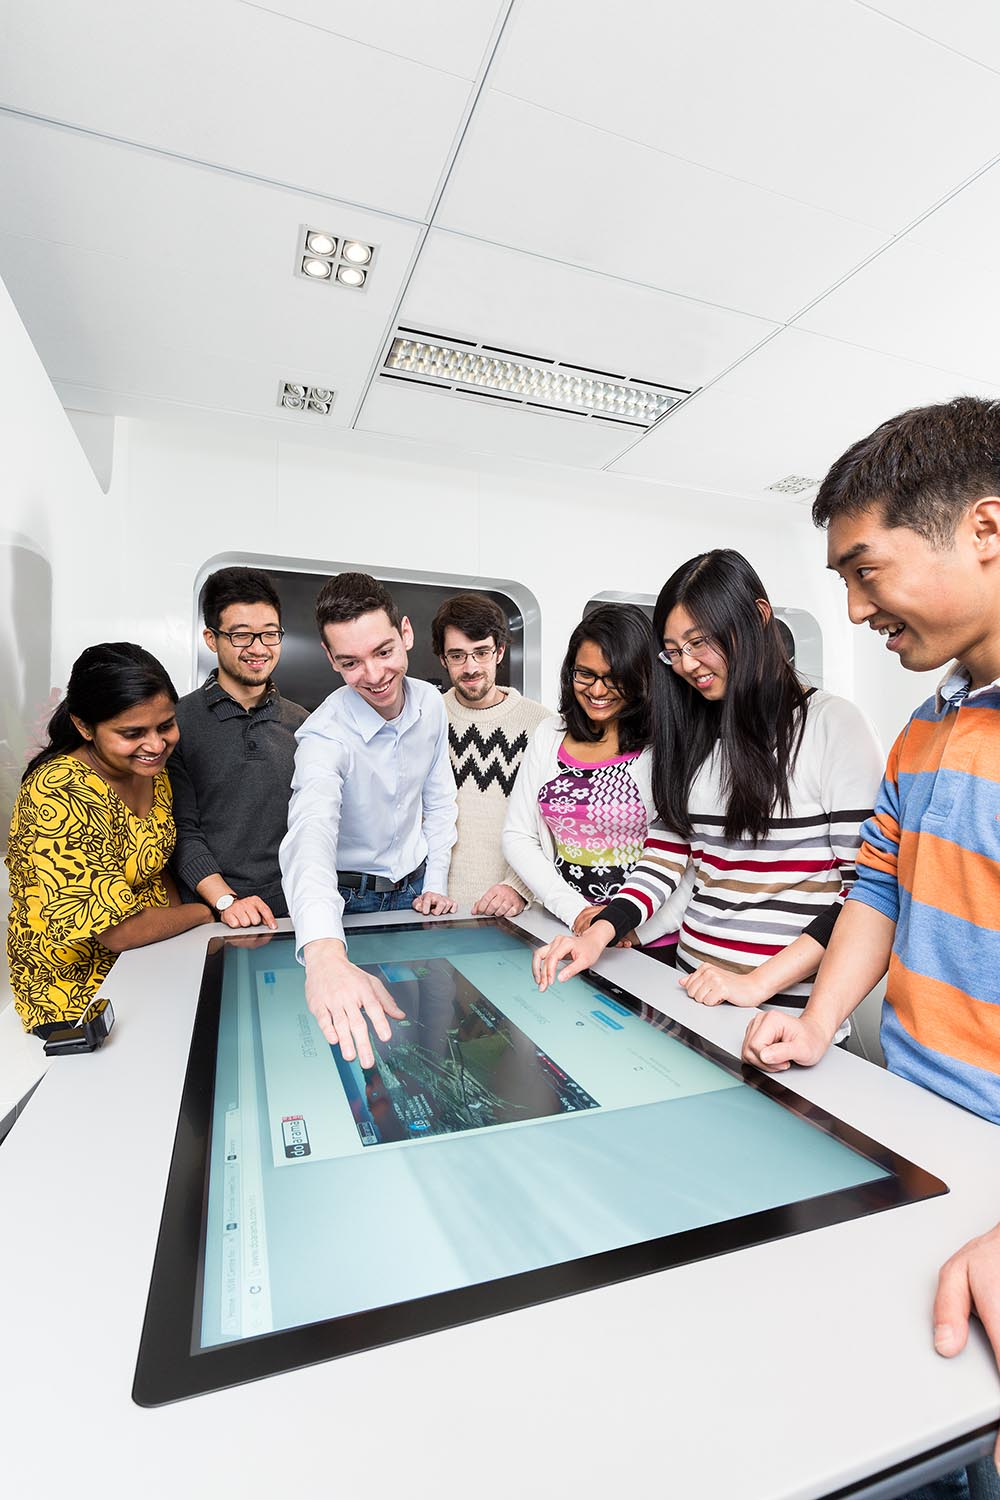 A group of men and women are standing around a desk that has a screen built into it, one man is reaching outo to touch the screen